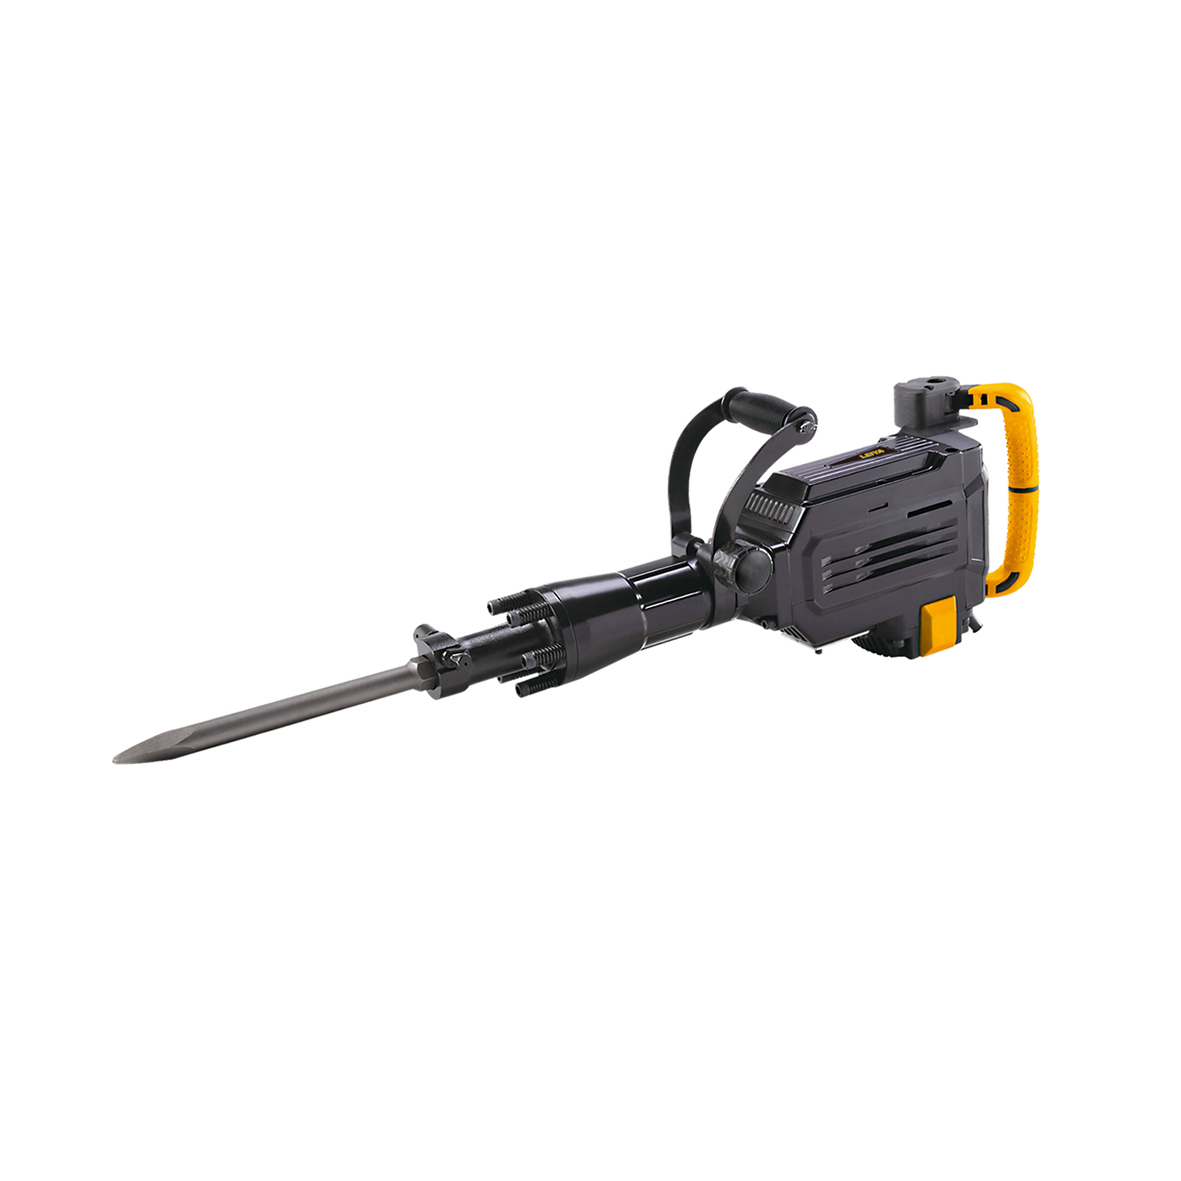 Hex30  1800W Professional Demolition Hammer LY105-02